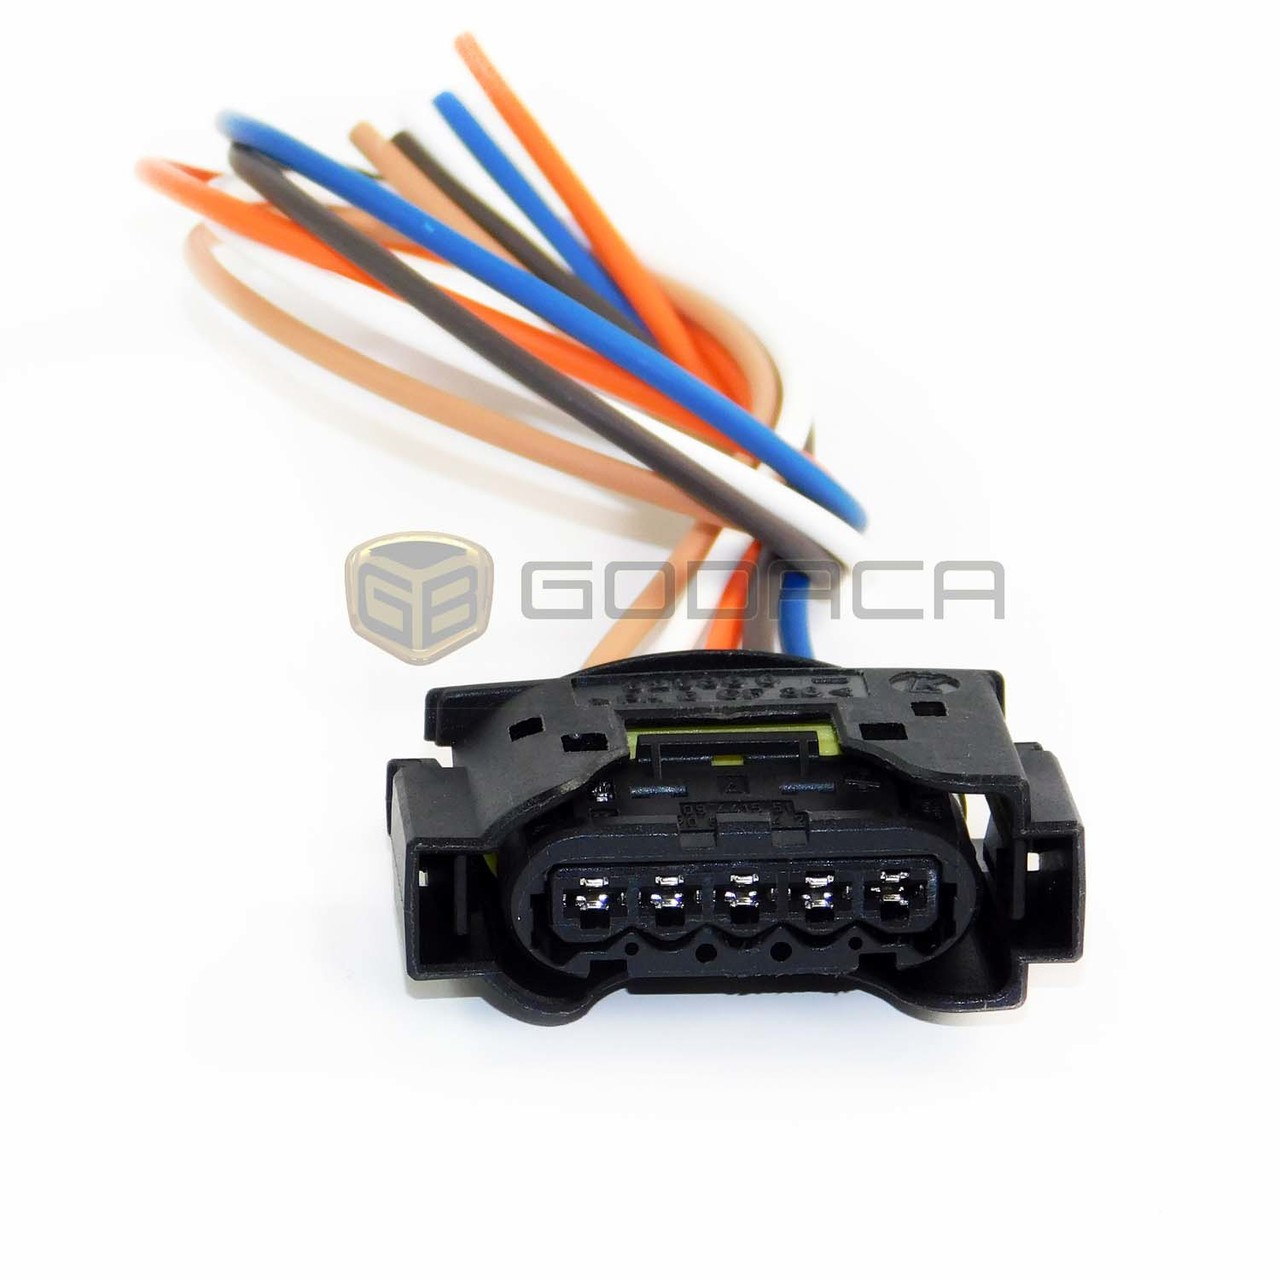 small resolution of 1x connector 5 way 5 pin for mercedes benz preheater a 2205450429 godaca llc